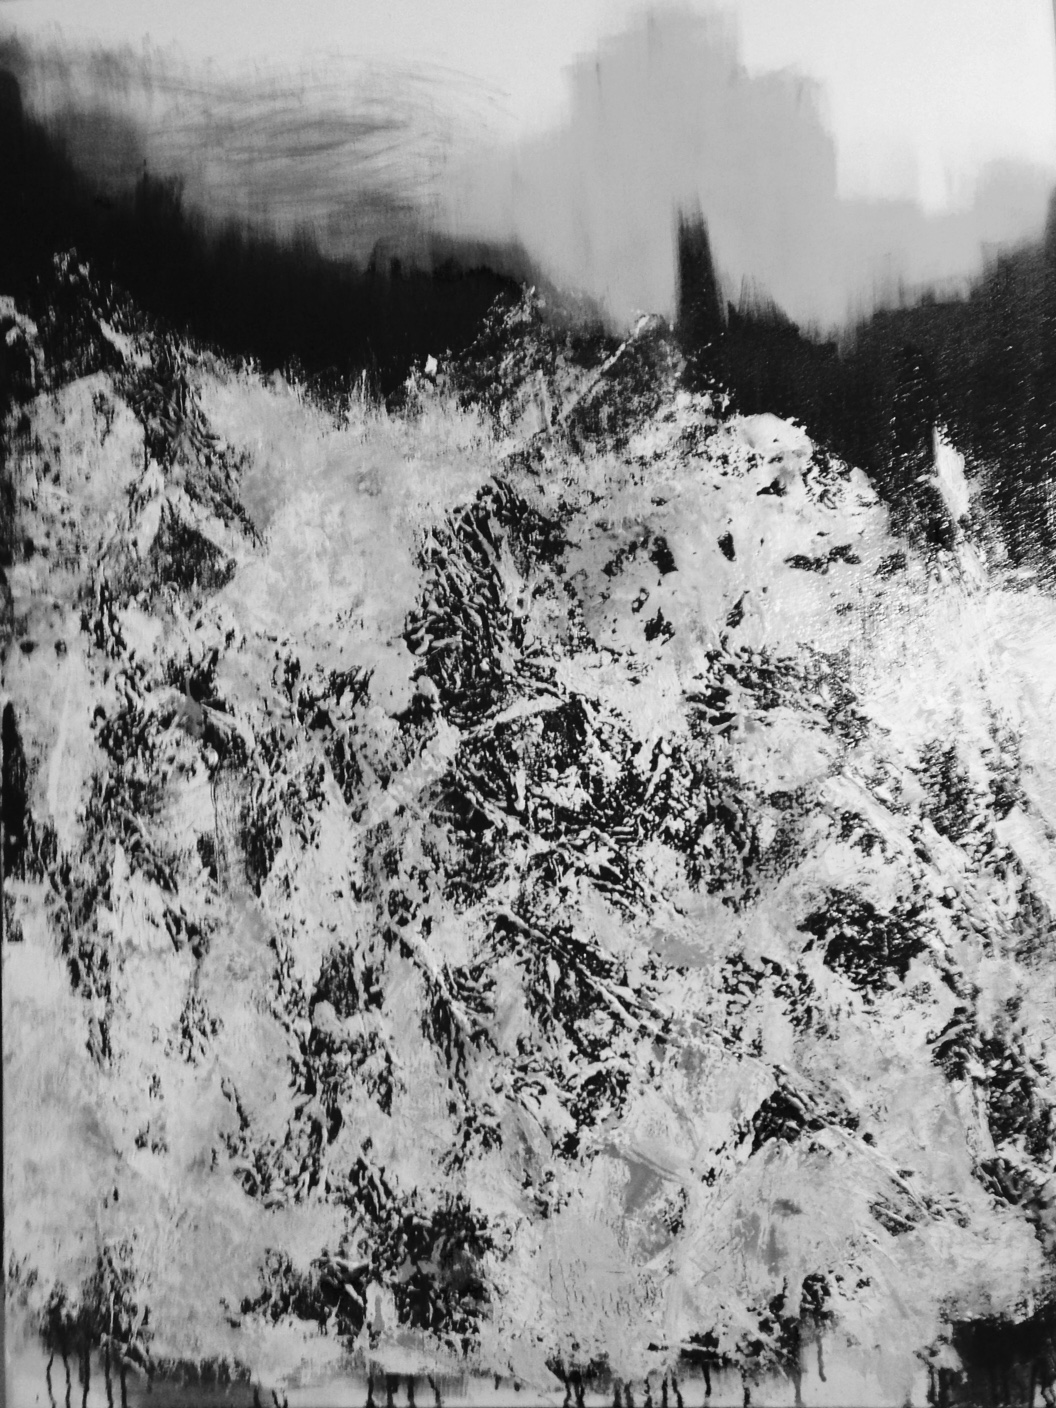 Black and White image of the painting in progress to share with my client who is partially colorblind.